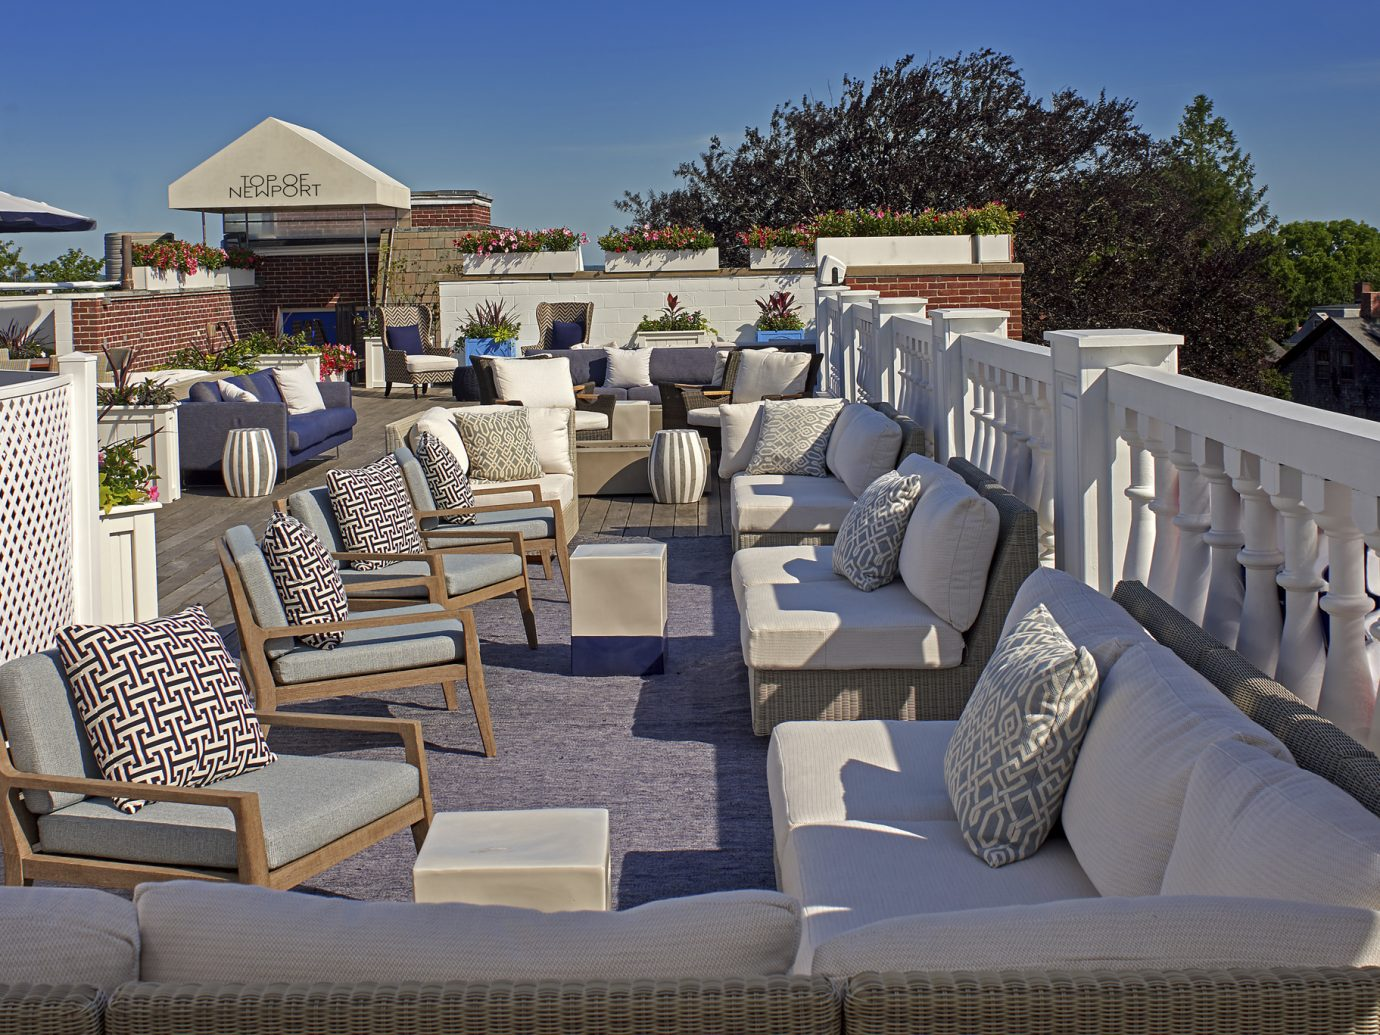 Terrace at Hotel Viking with seating